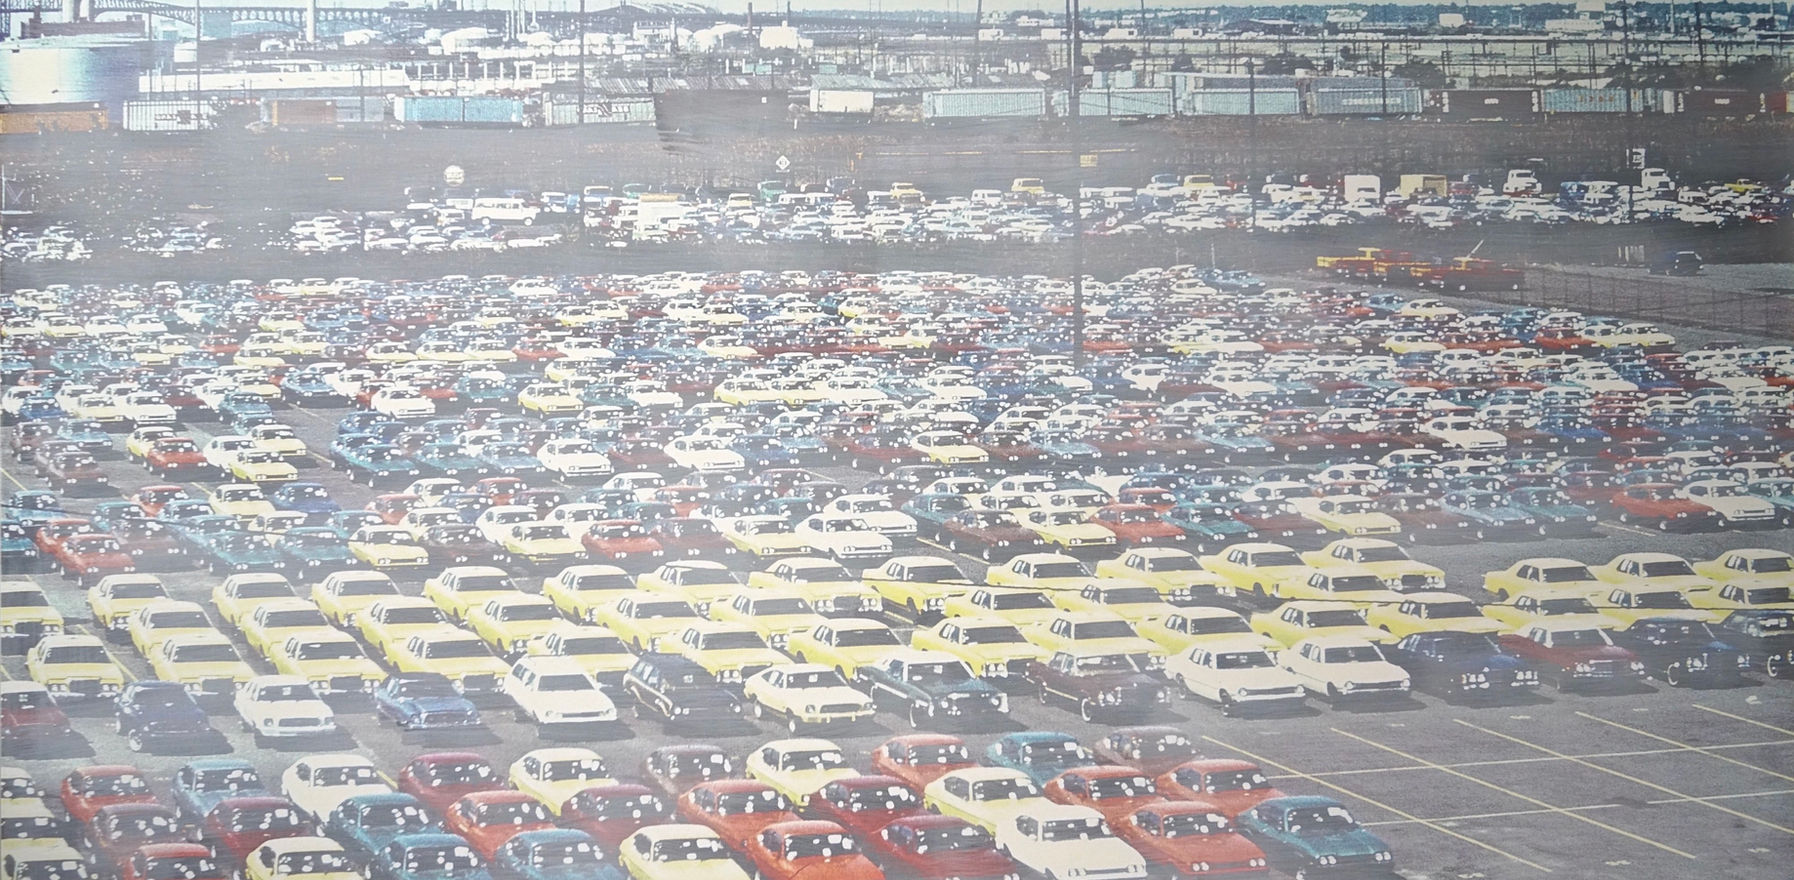 Parked Cars, 2016